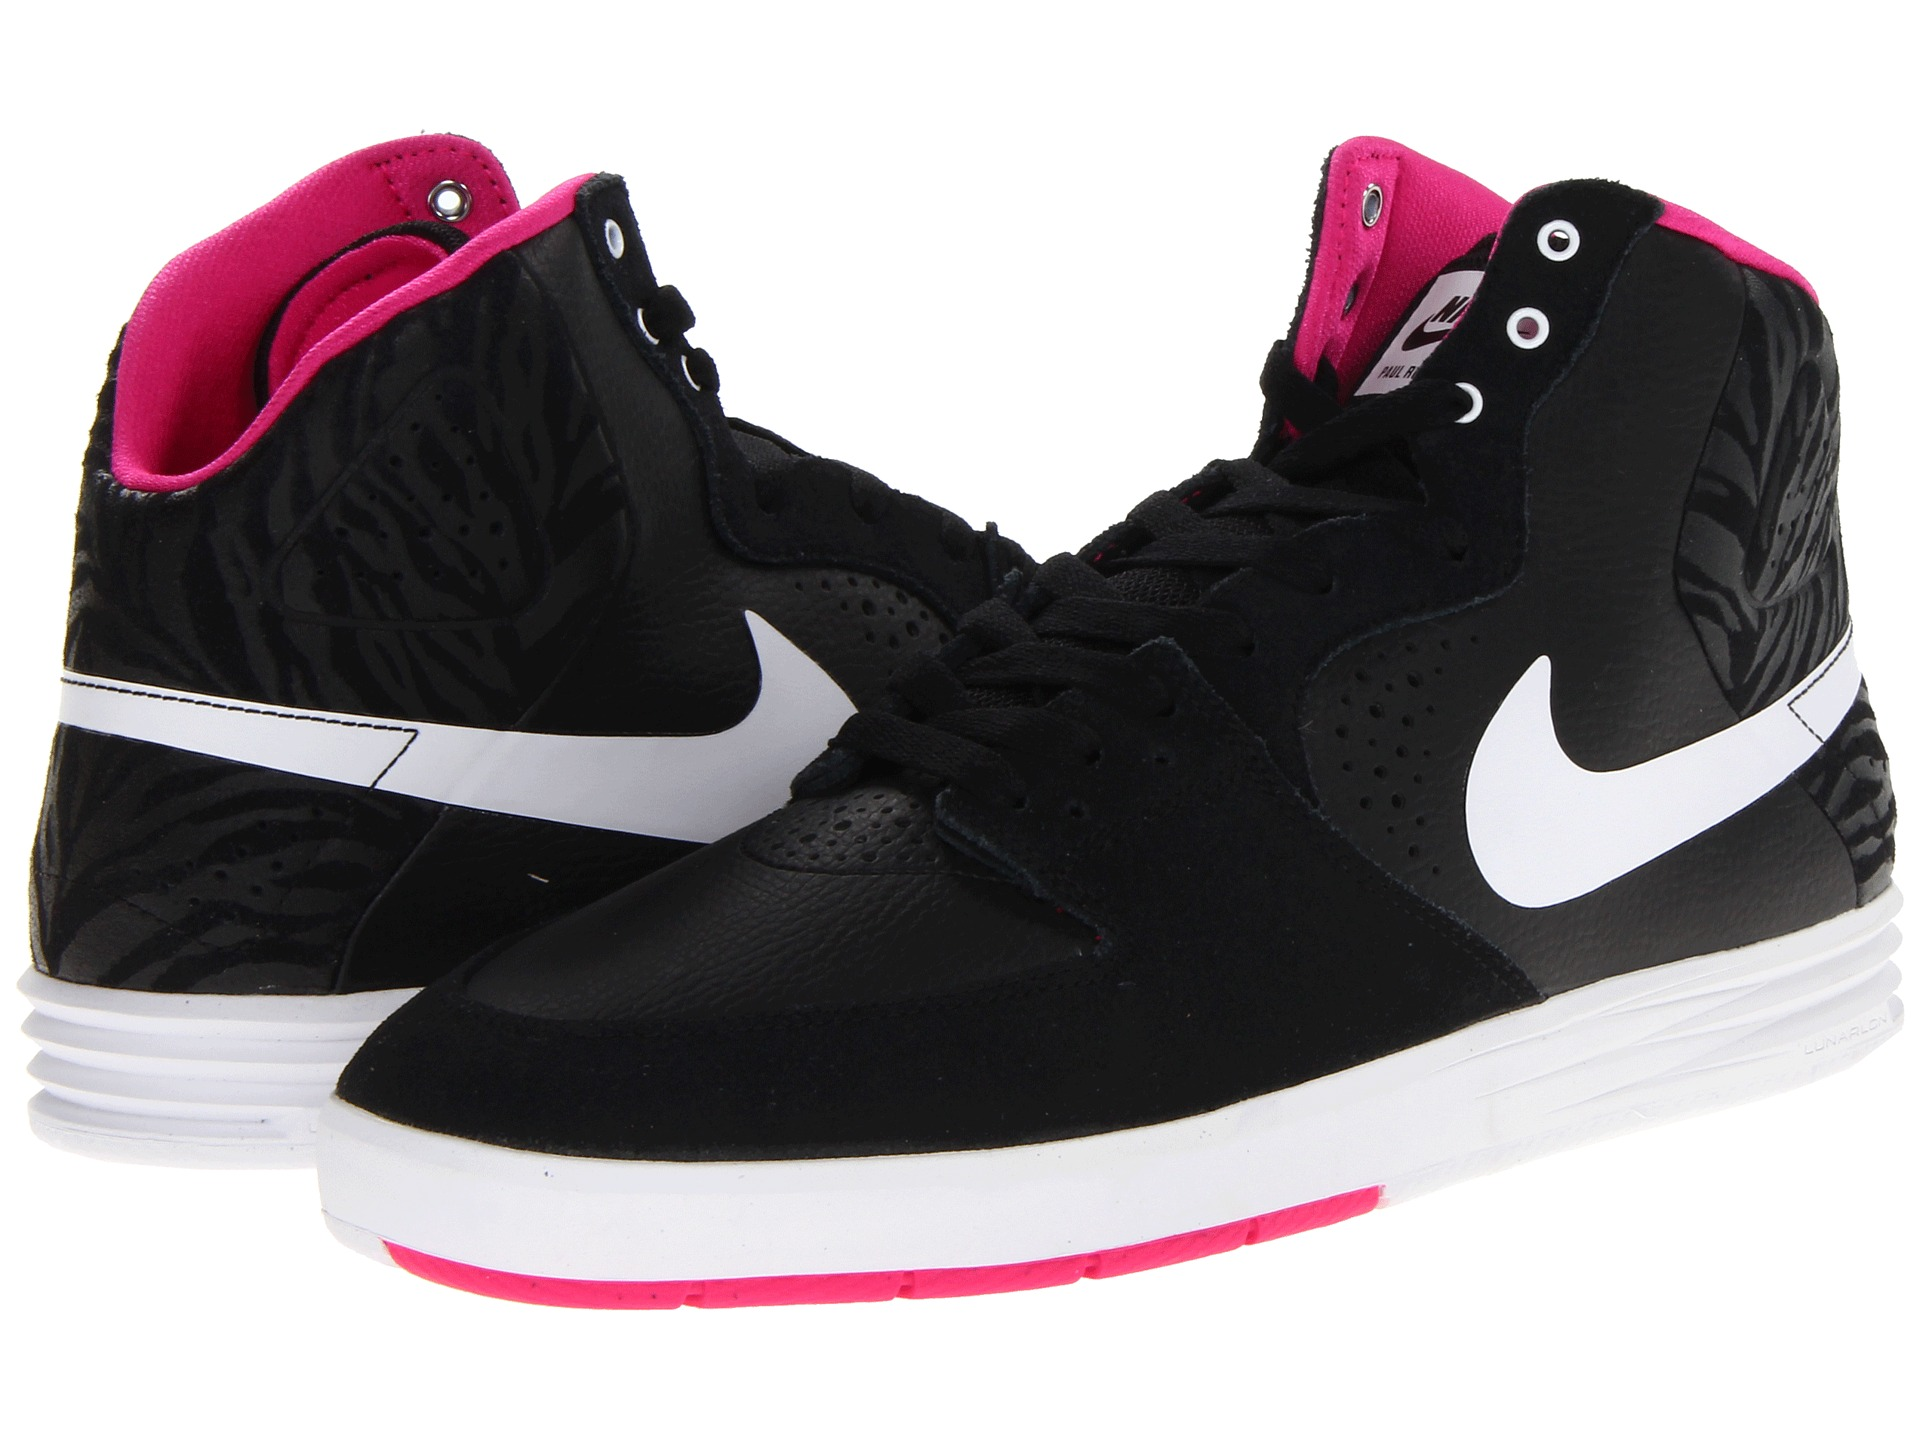 nike sb paul rodriguez 7 high shipped free at zappos. Black Bedroom Furniture Sets. Home Design Ideas